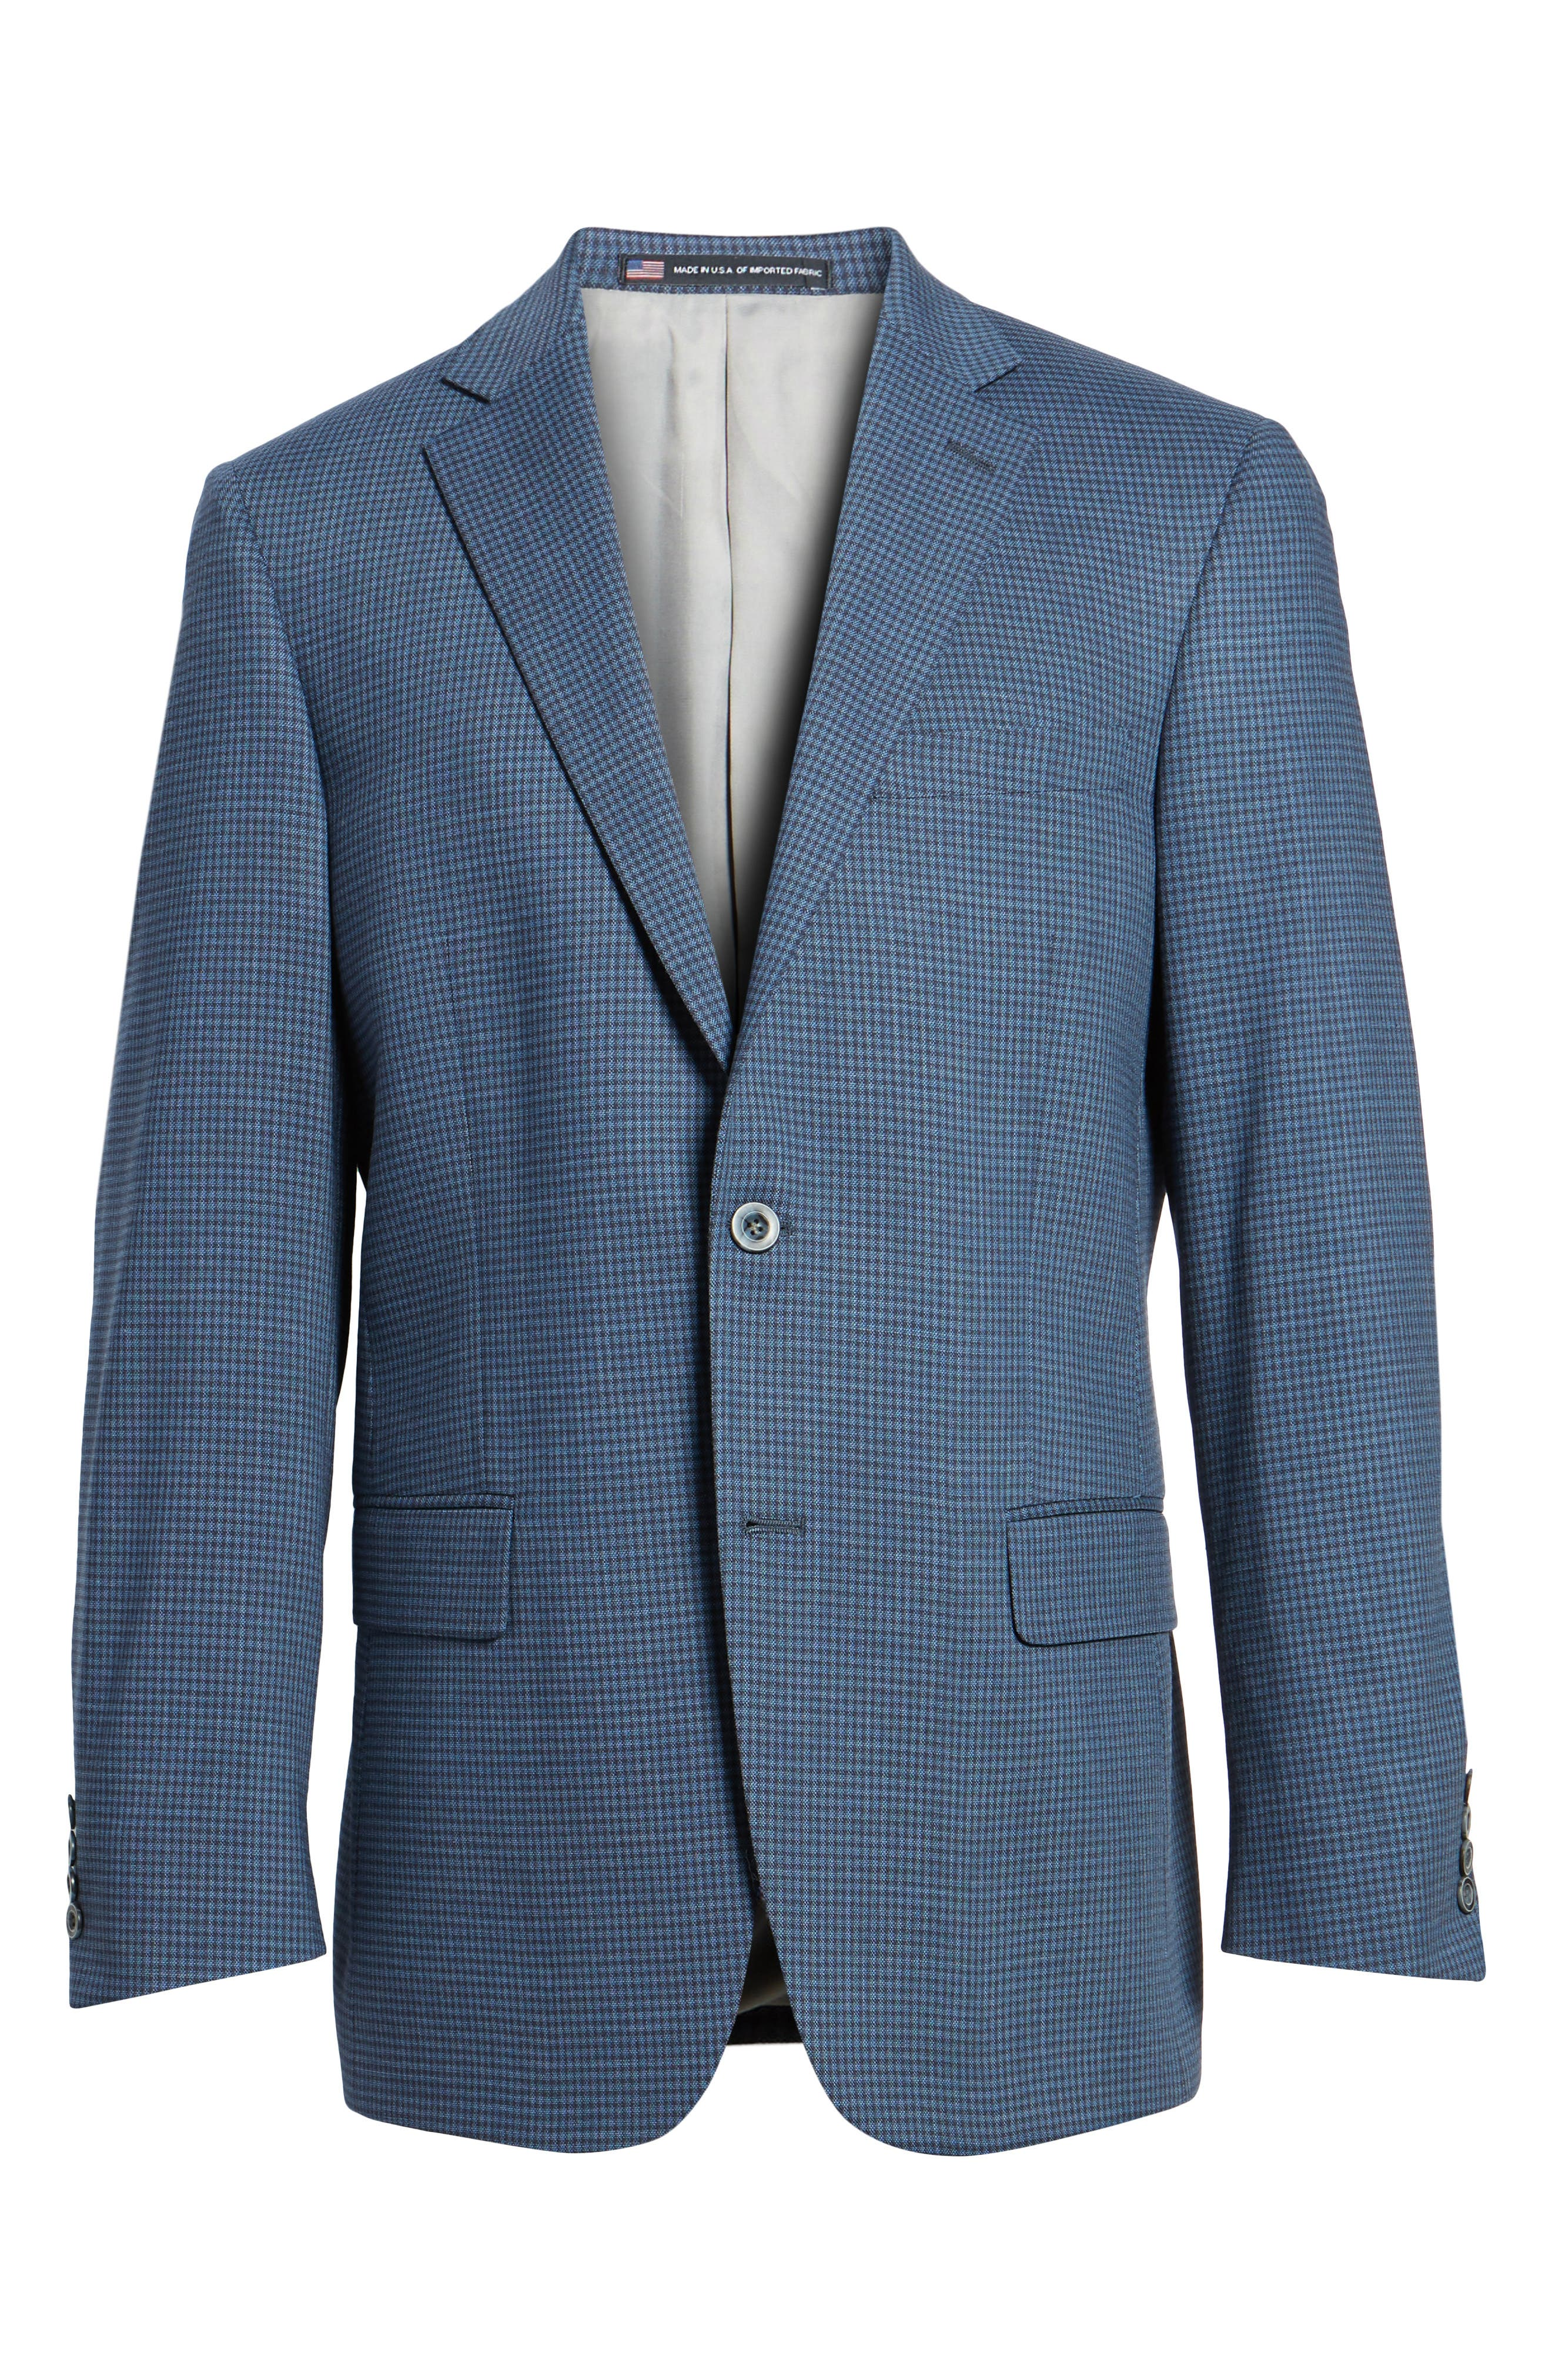 Classic Fit Stretch Check Wool Sport Coat,                             Alternate thumbnail 6, color,                             Navy